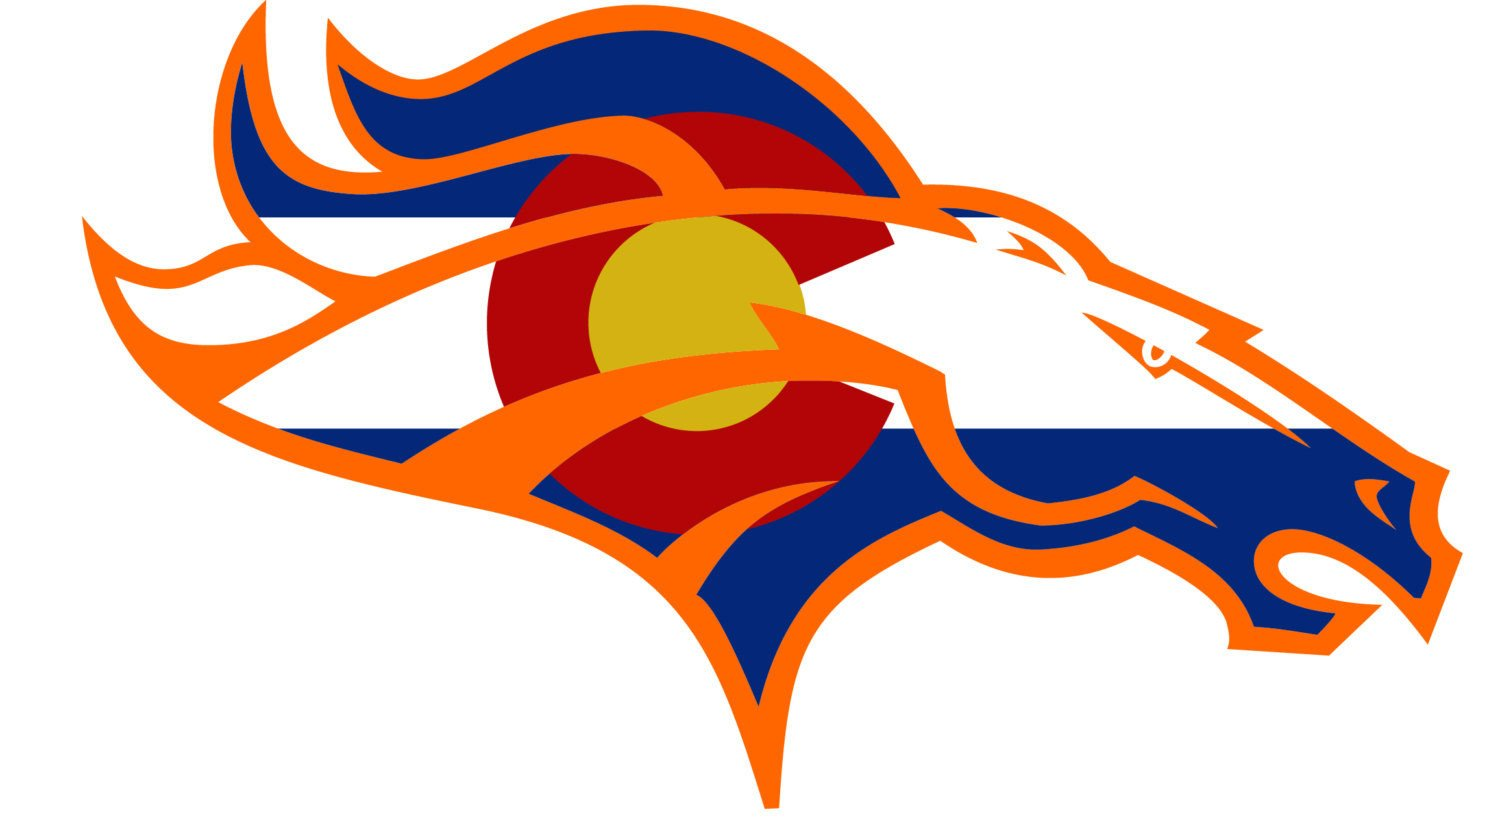 Denver Broncos Logo Clipart at GetDrawings.com.